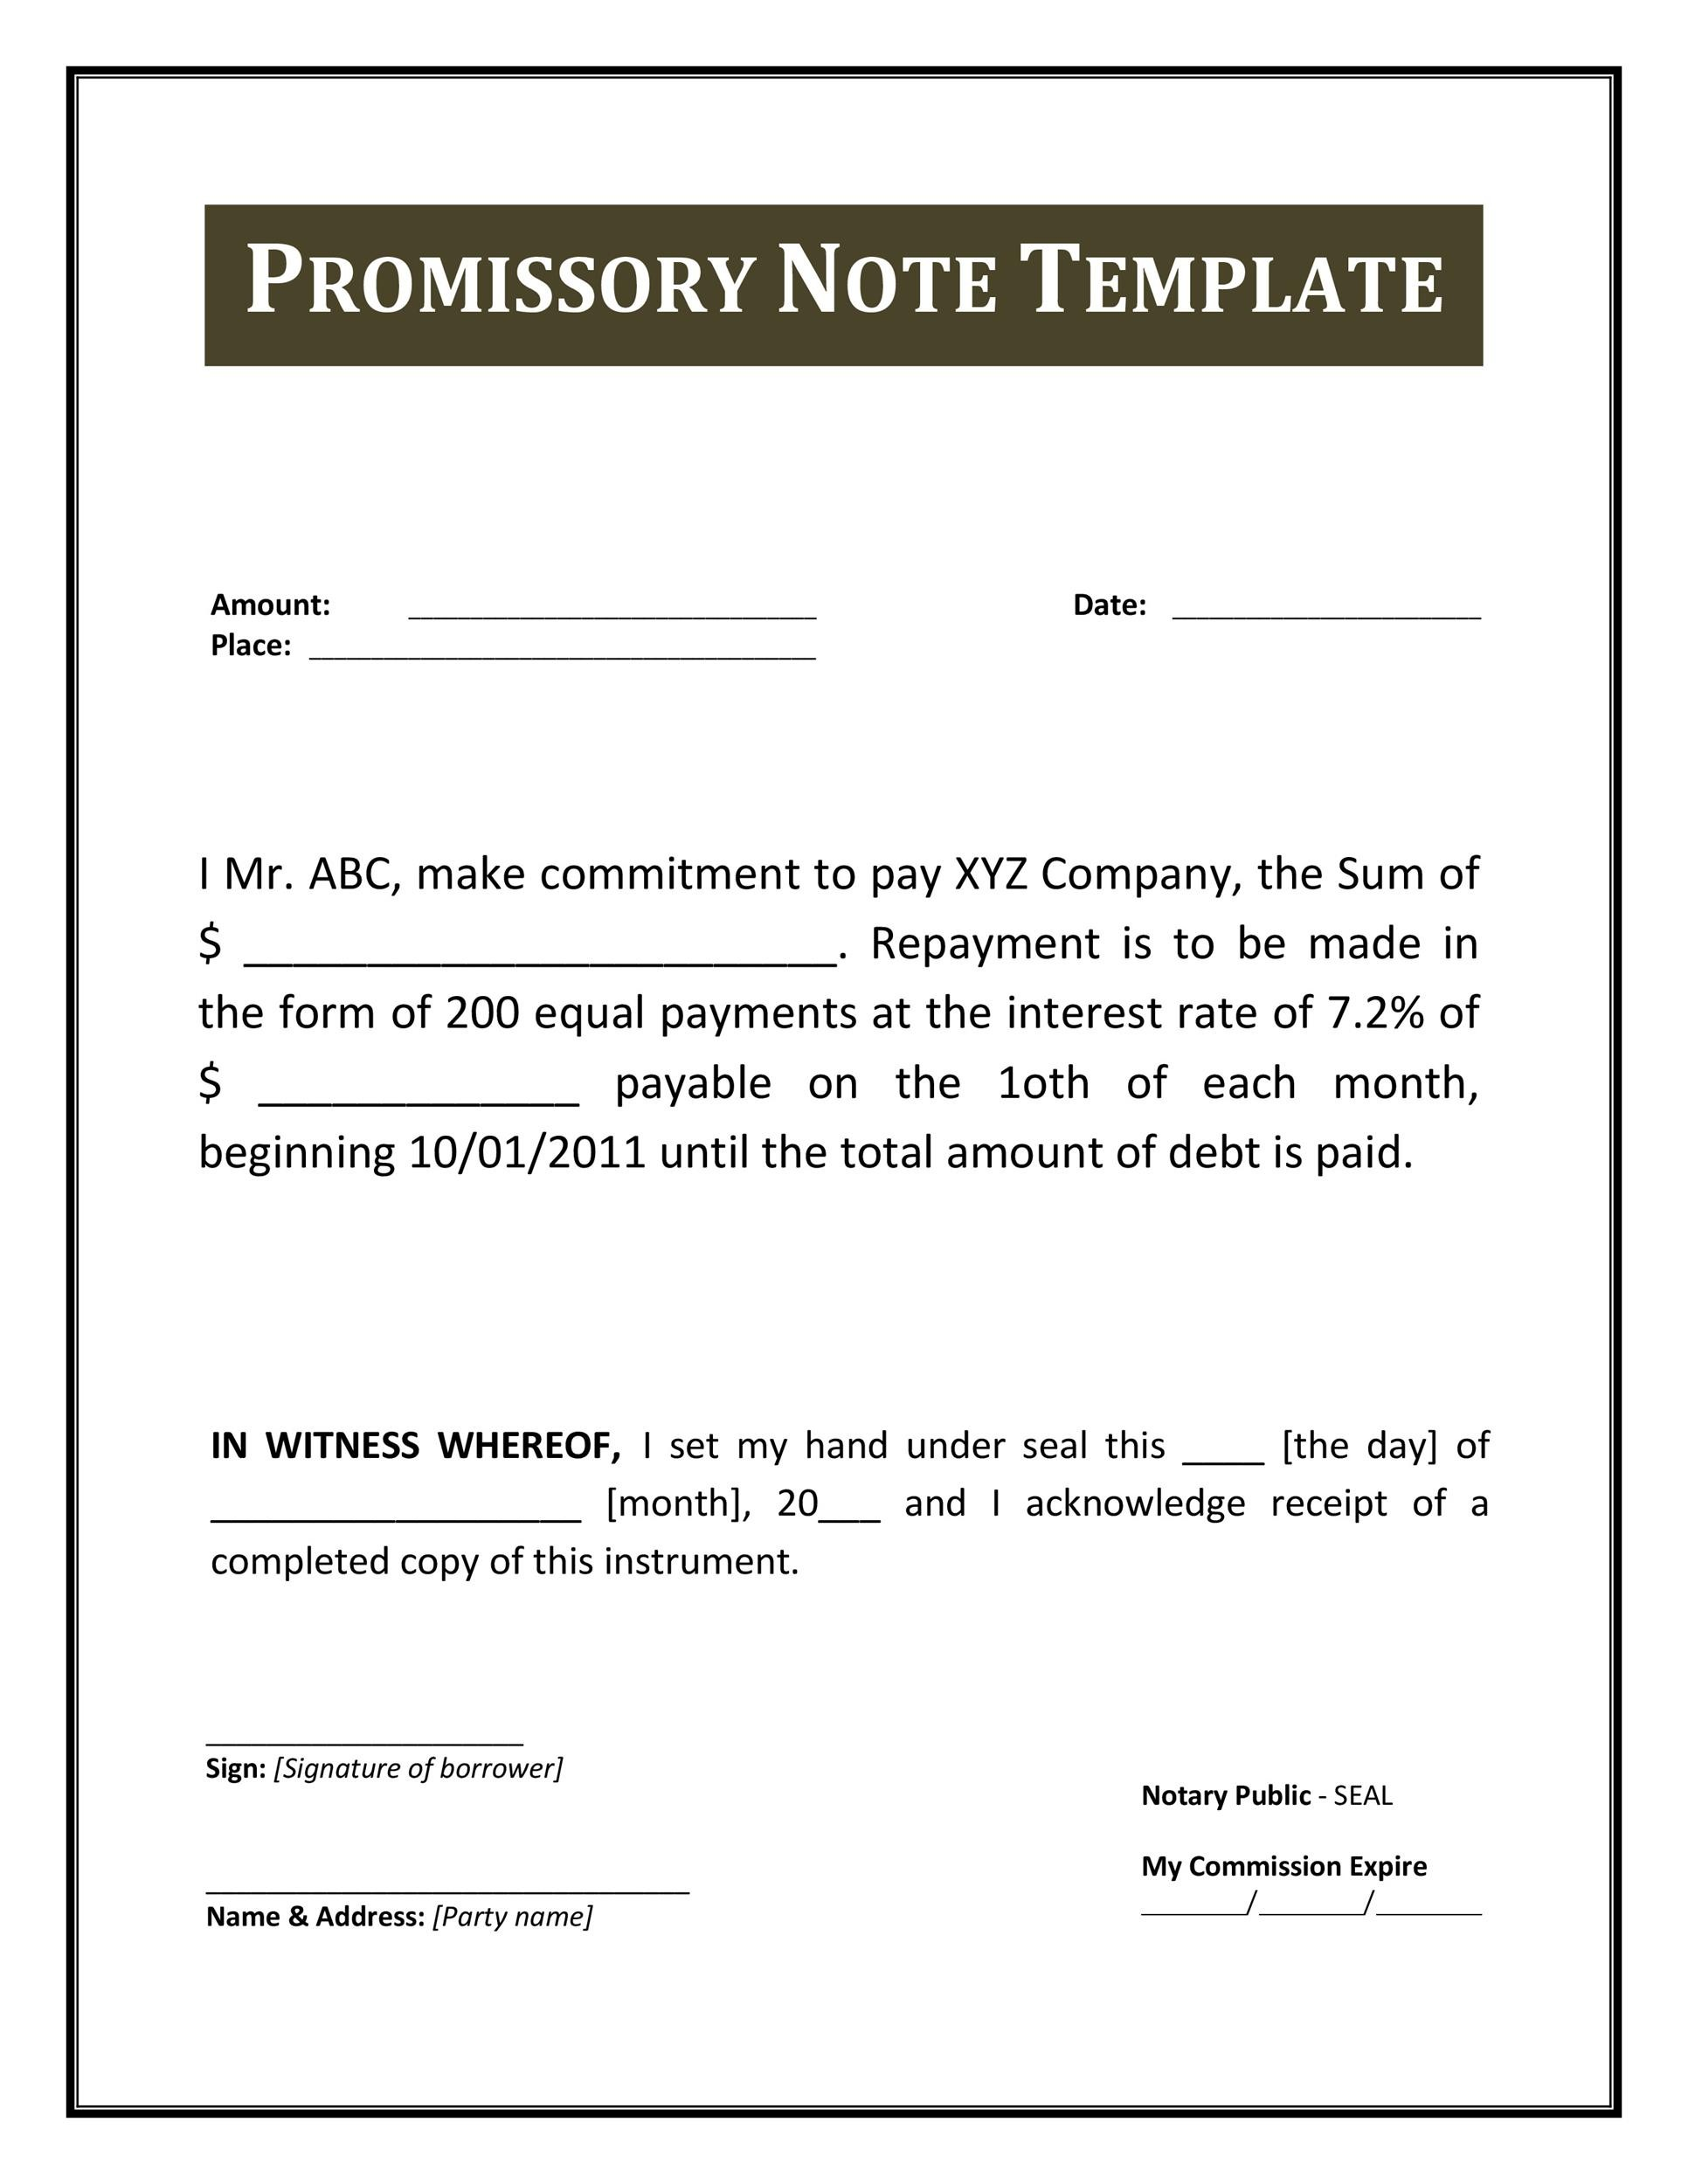 Lovely Printable Promissory Note Template 33 Ideas Promissory Note Word Template